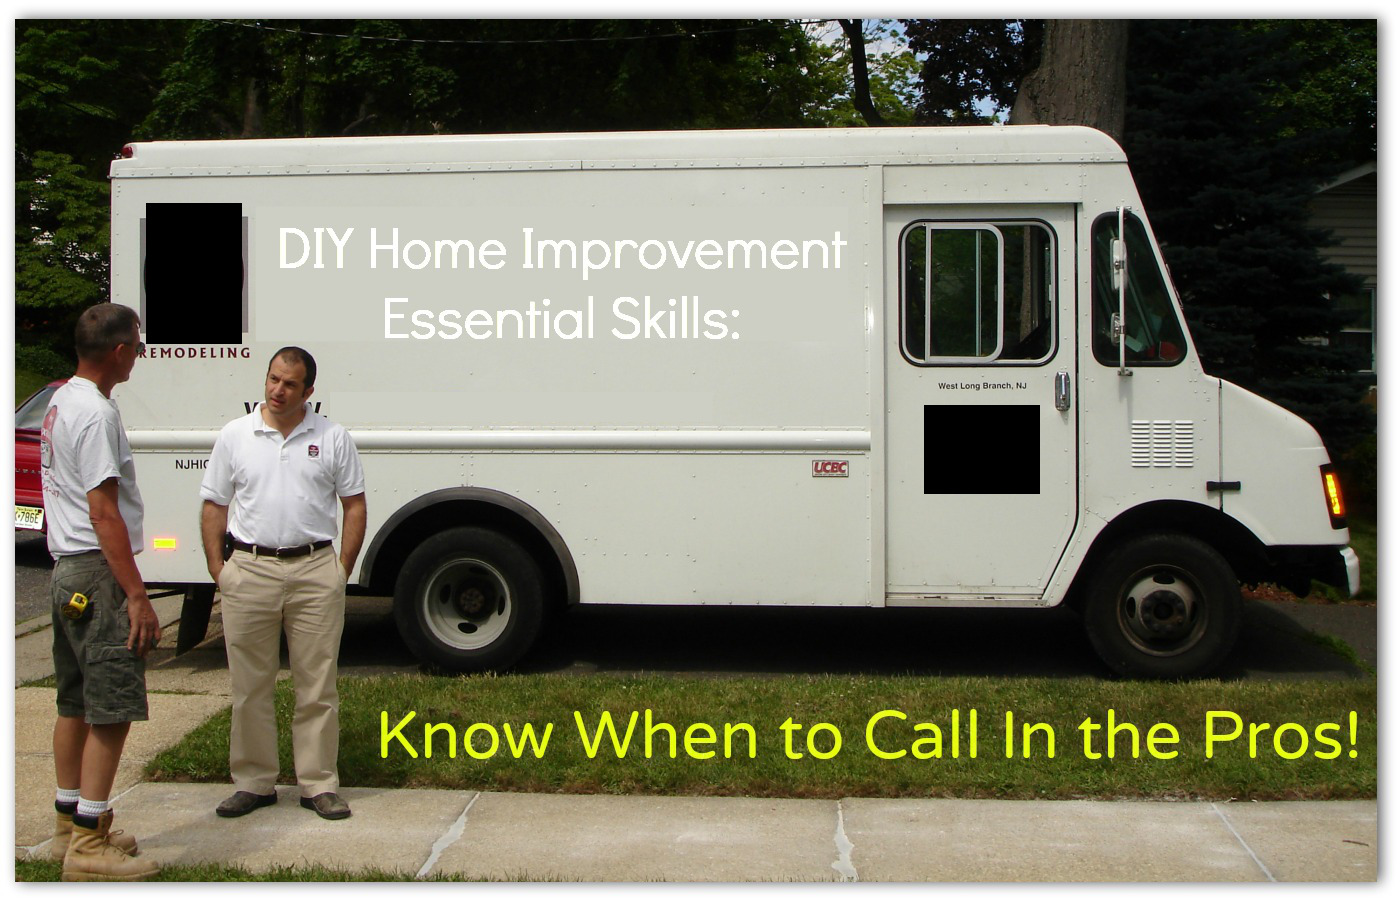 DIY Home Improvement Essential Skills